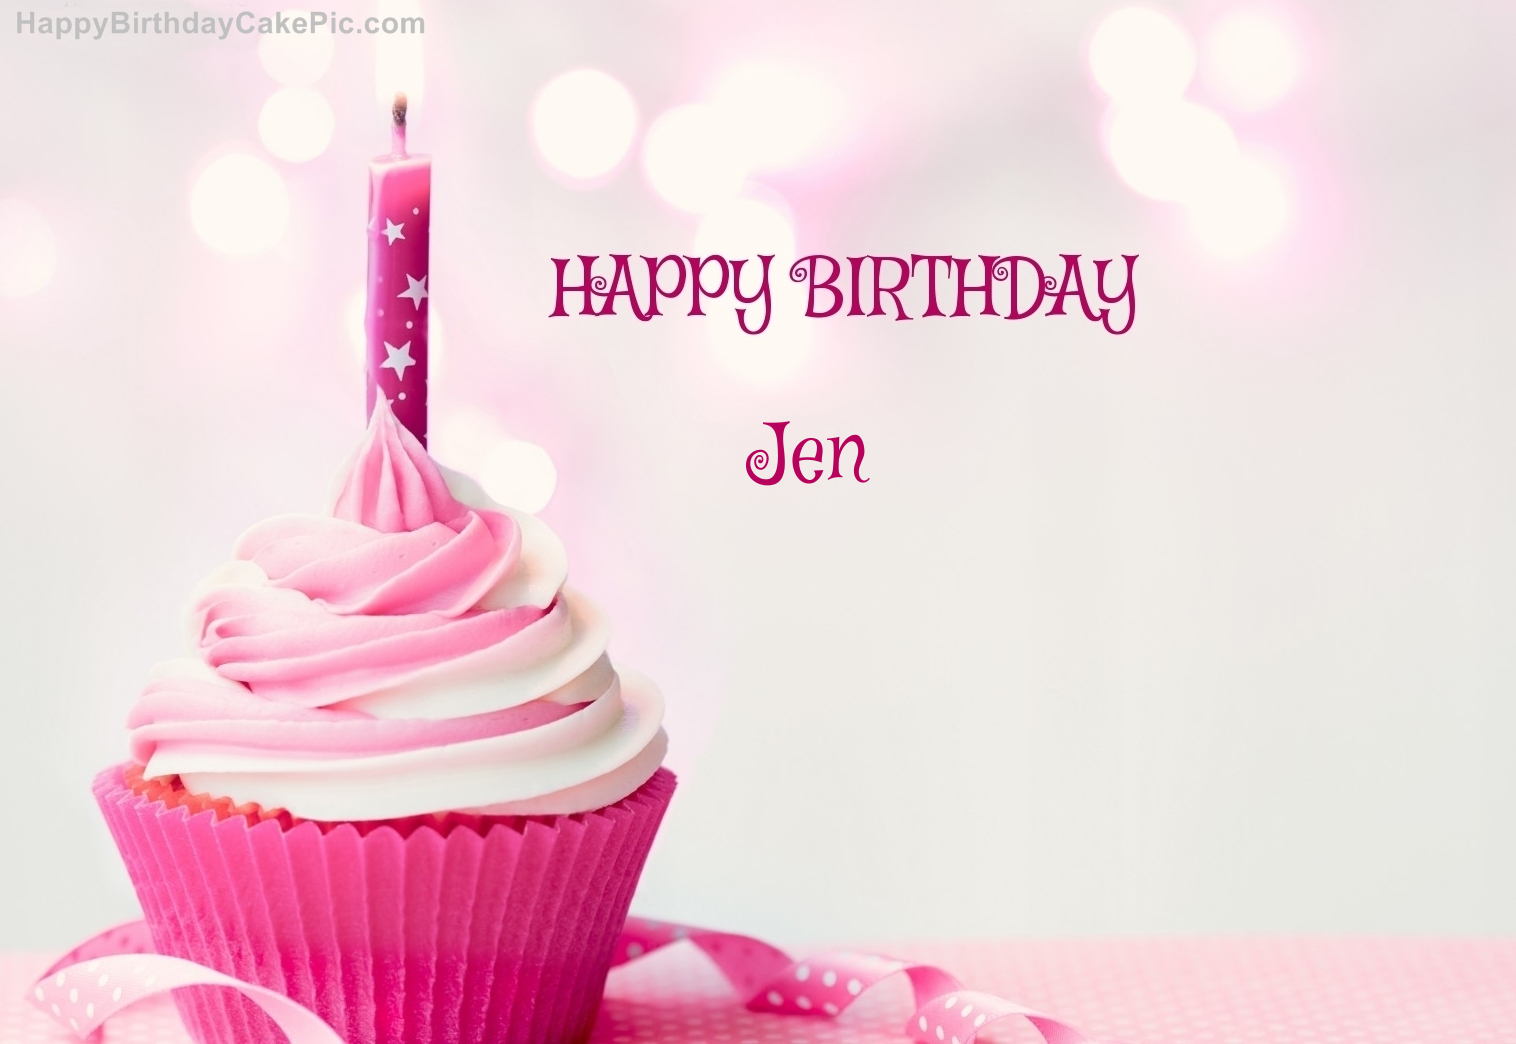 Happy Birthday Cupcake Candle Pink Cake For Jen